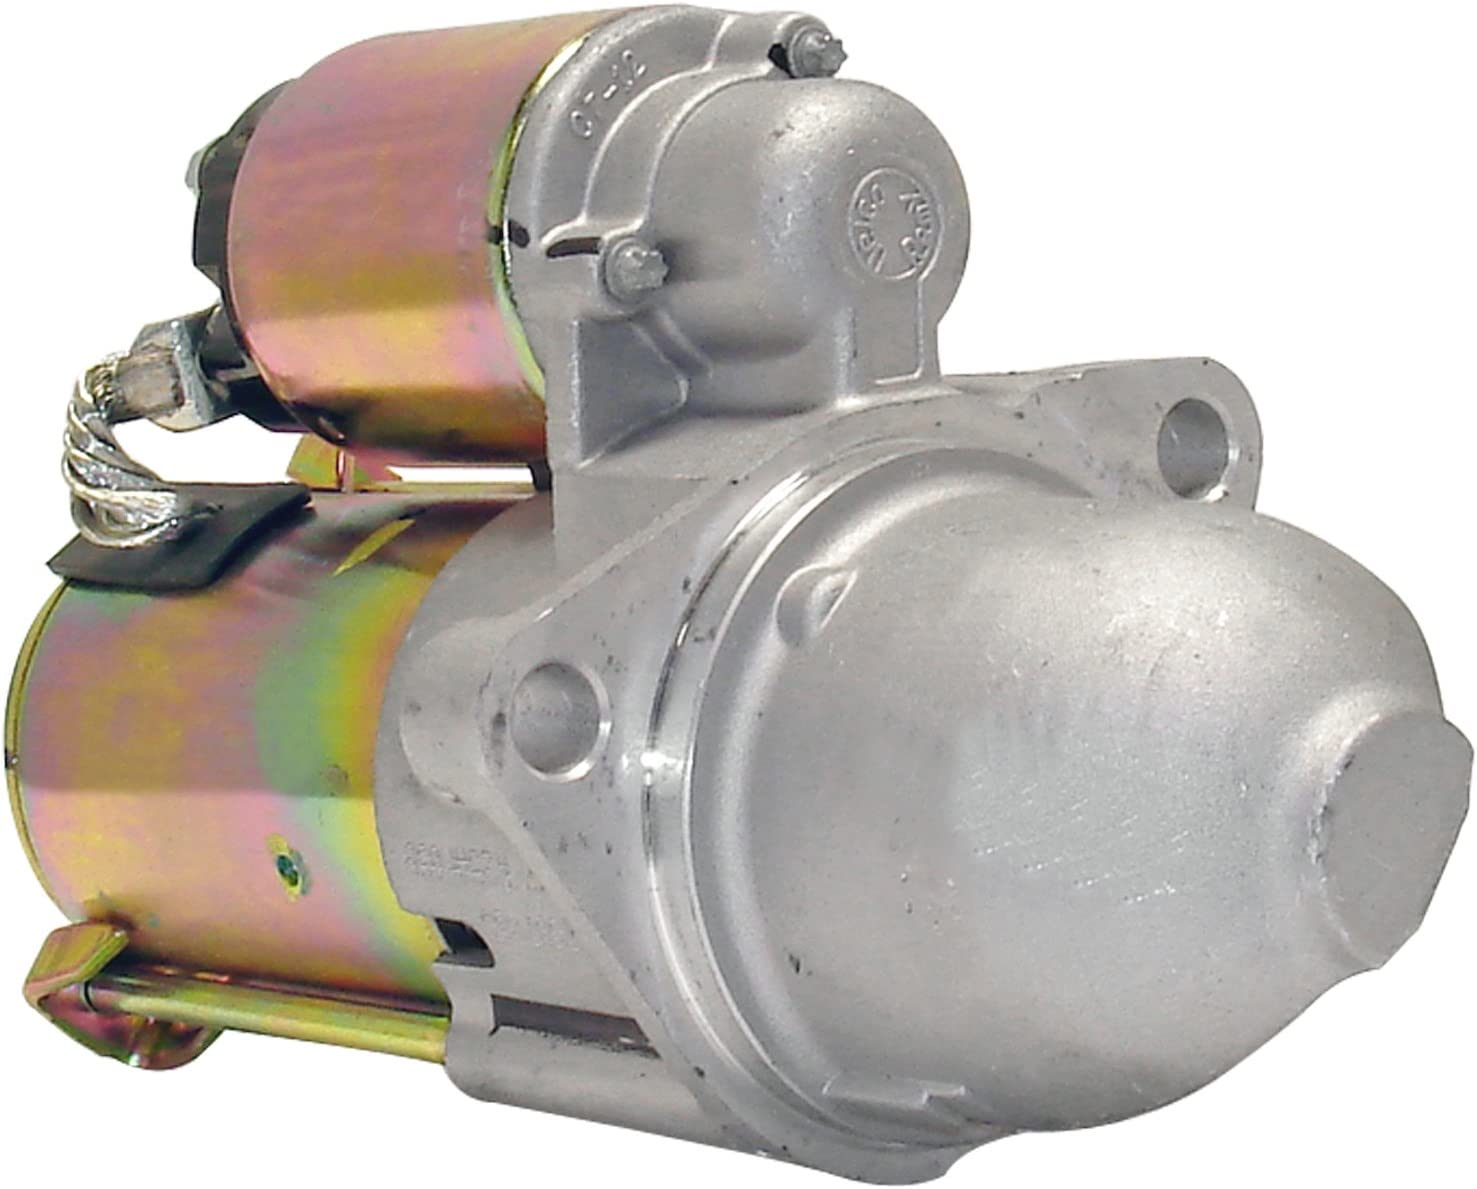 ACDelco Gold 336-1933A Special price Max 43% OFF for a limited time Remanufactured Starter